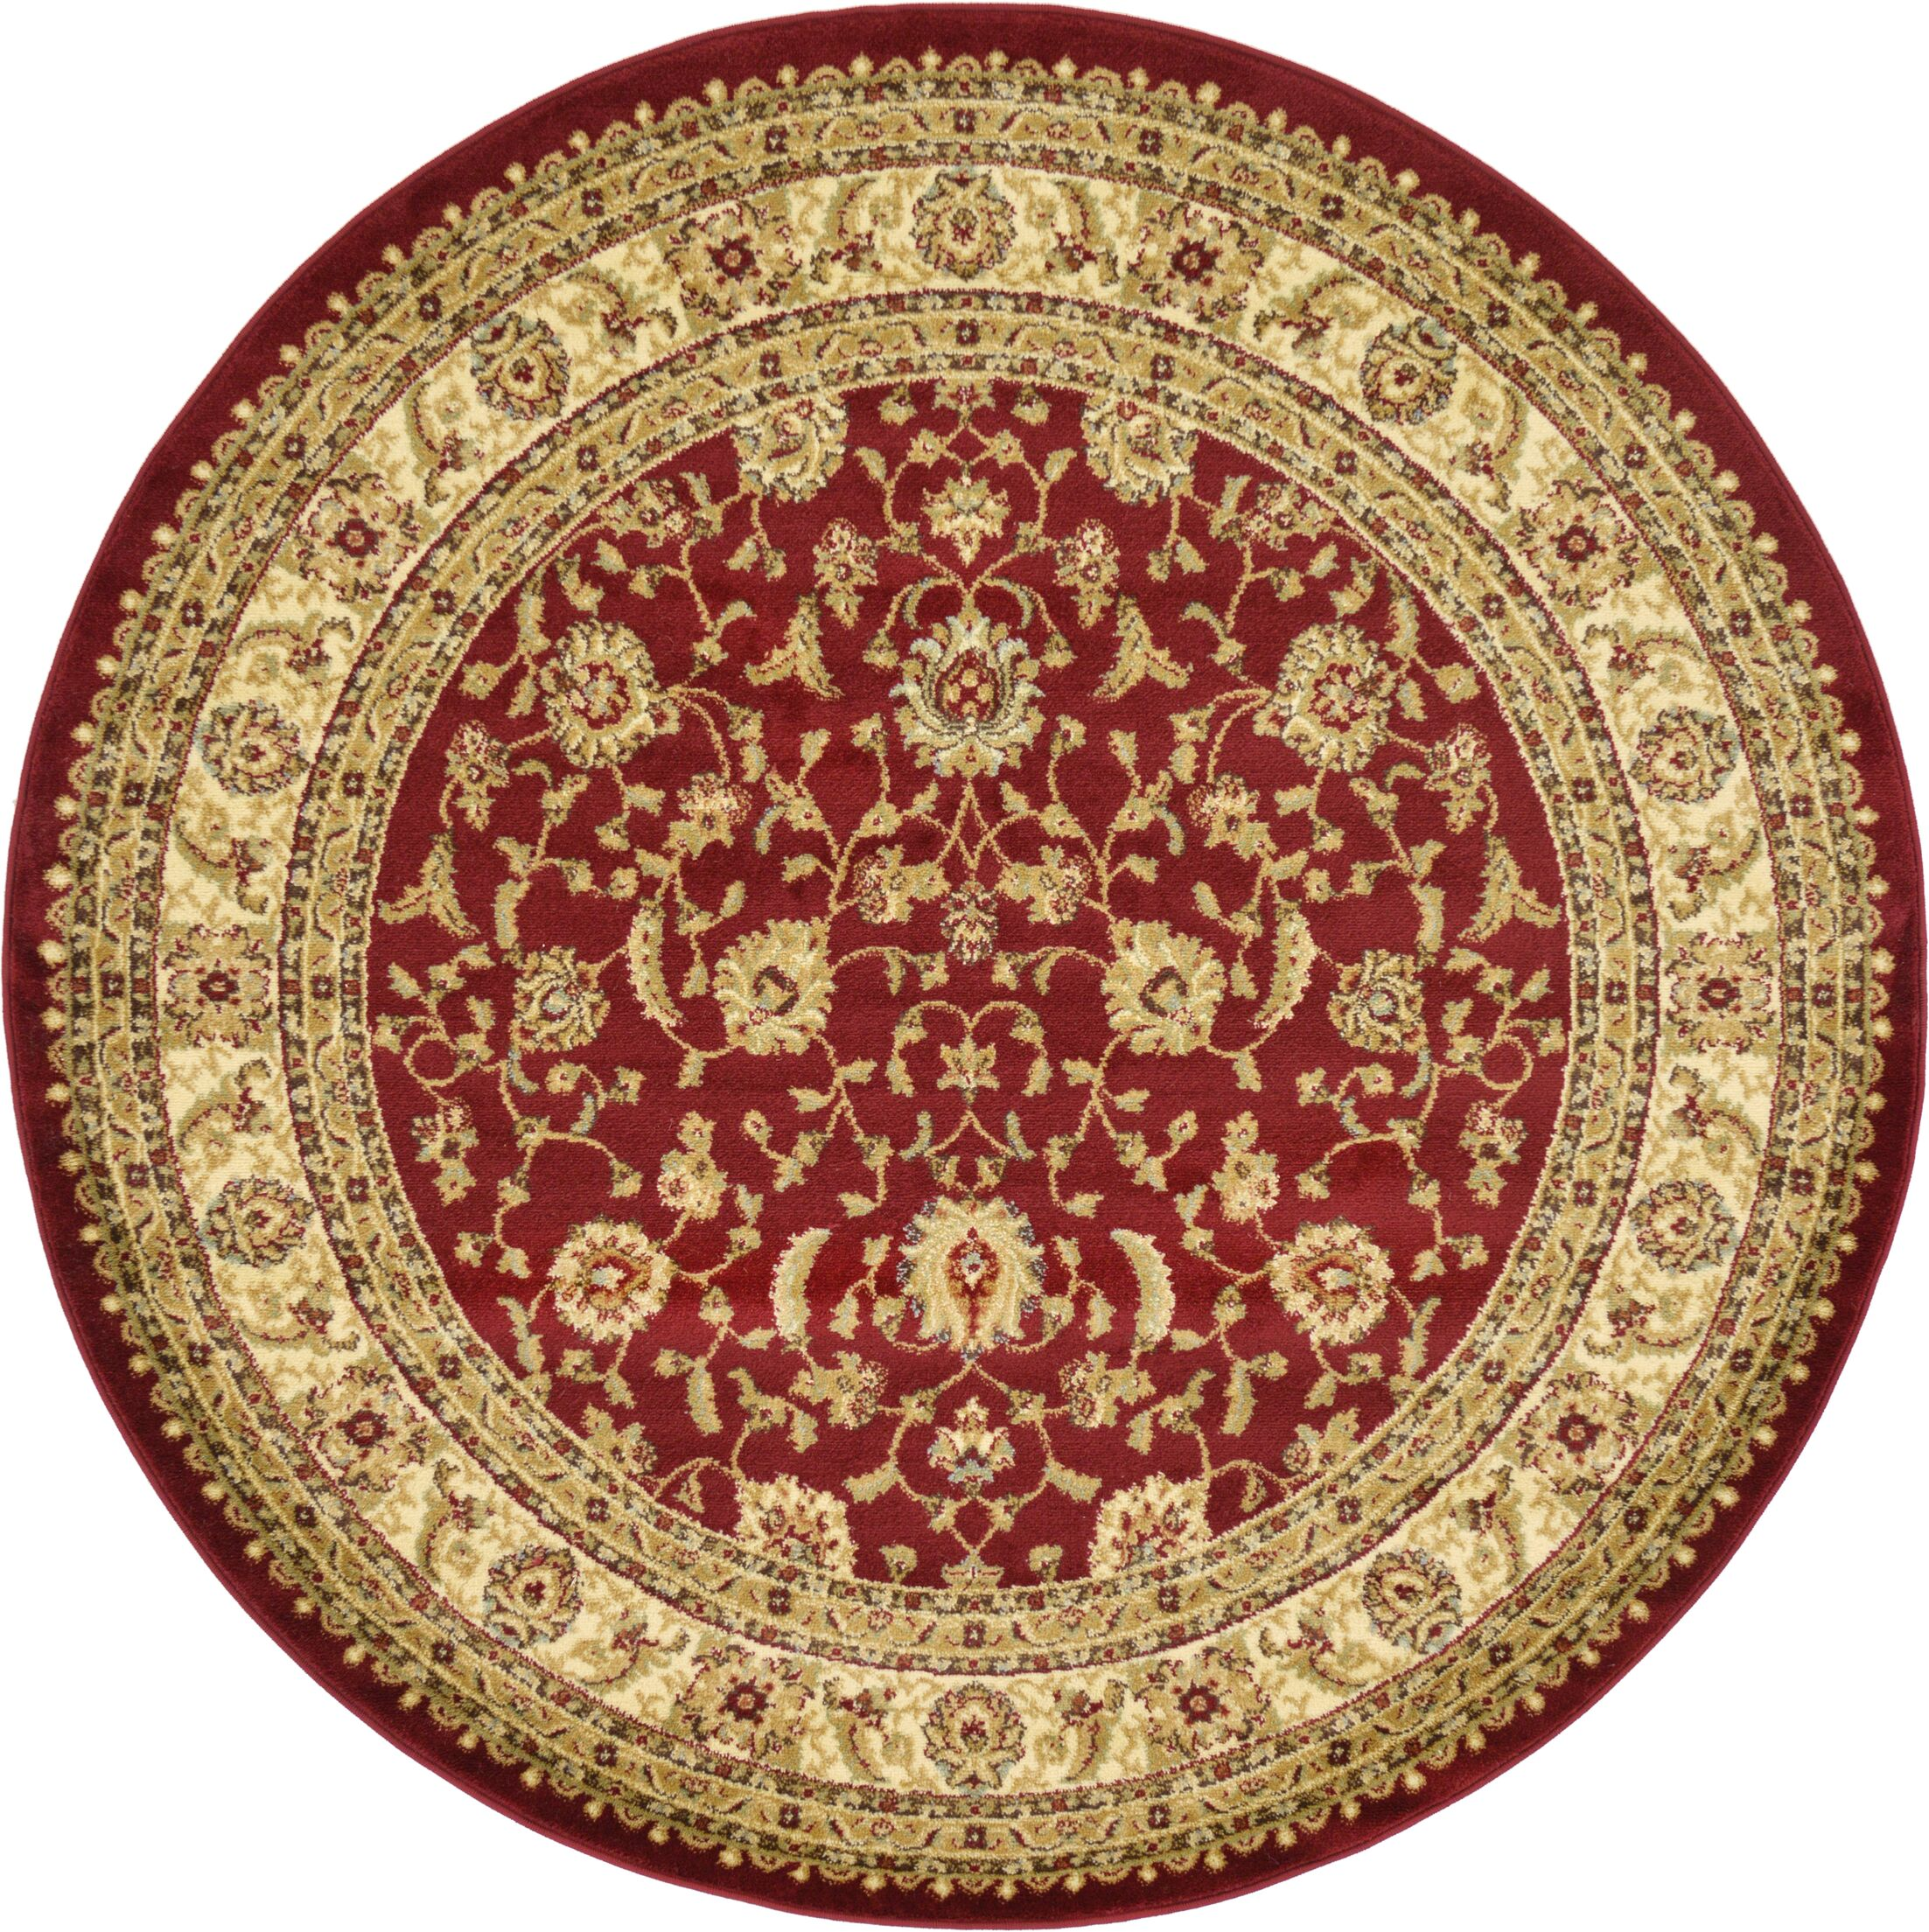 Fairmount Red/Cream Area Rug Rug Size: Round 6'